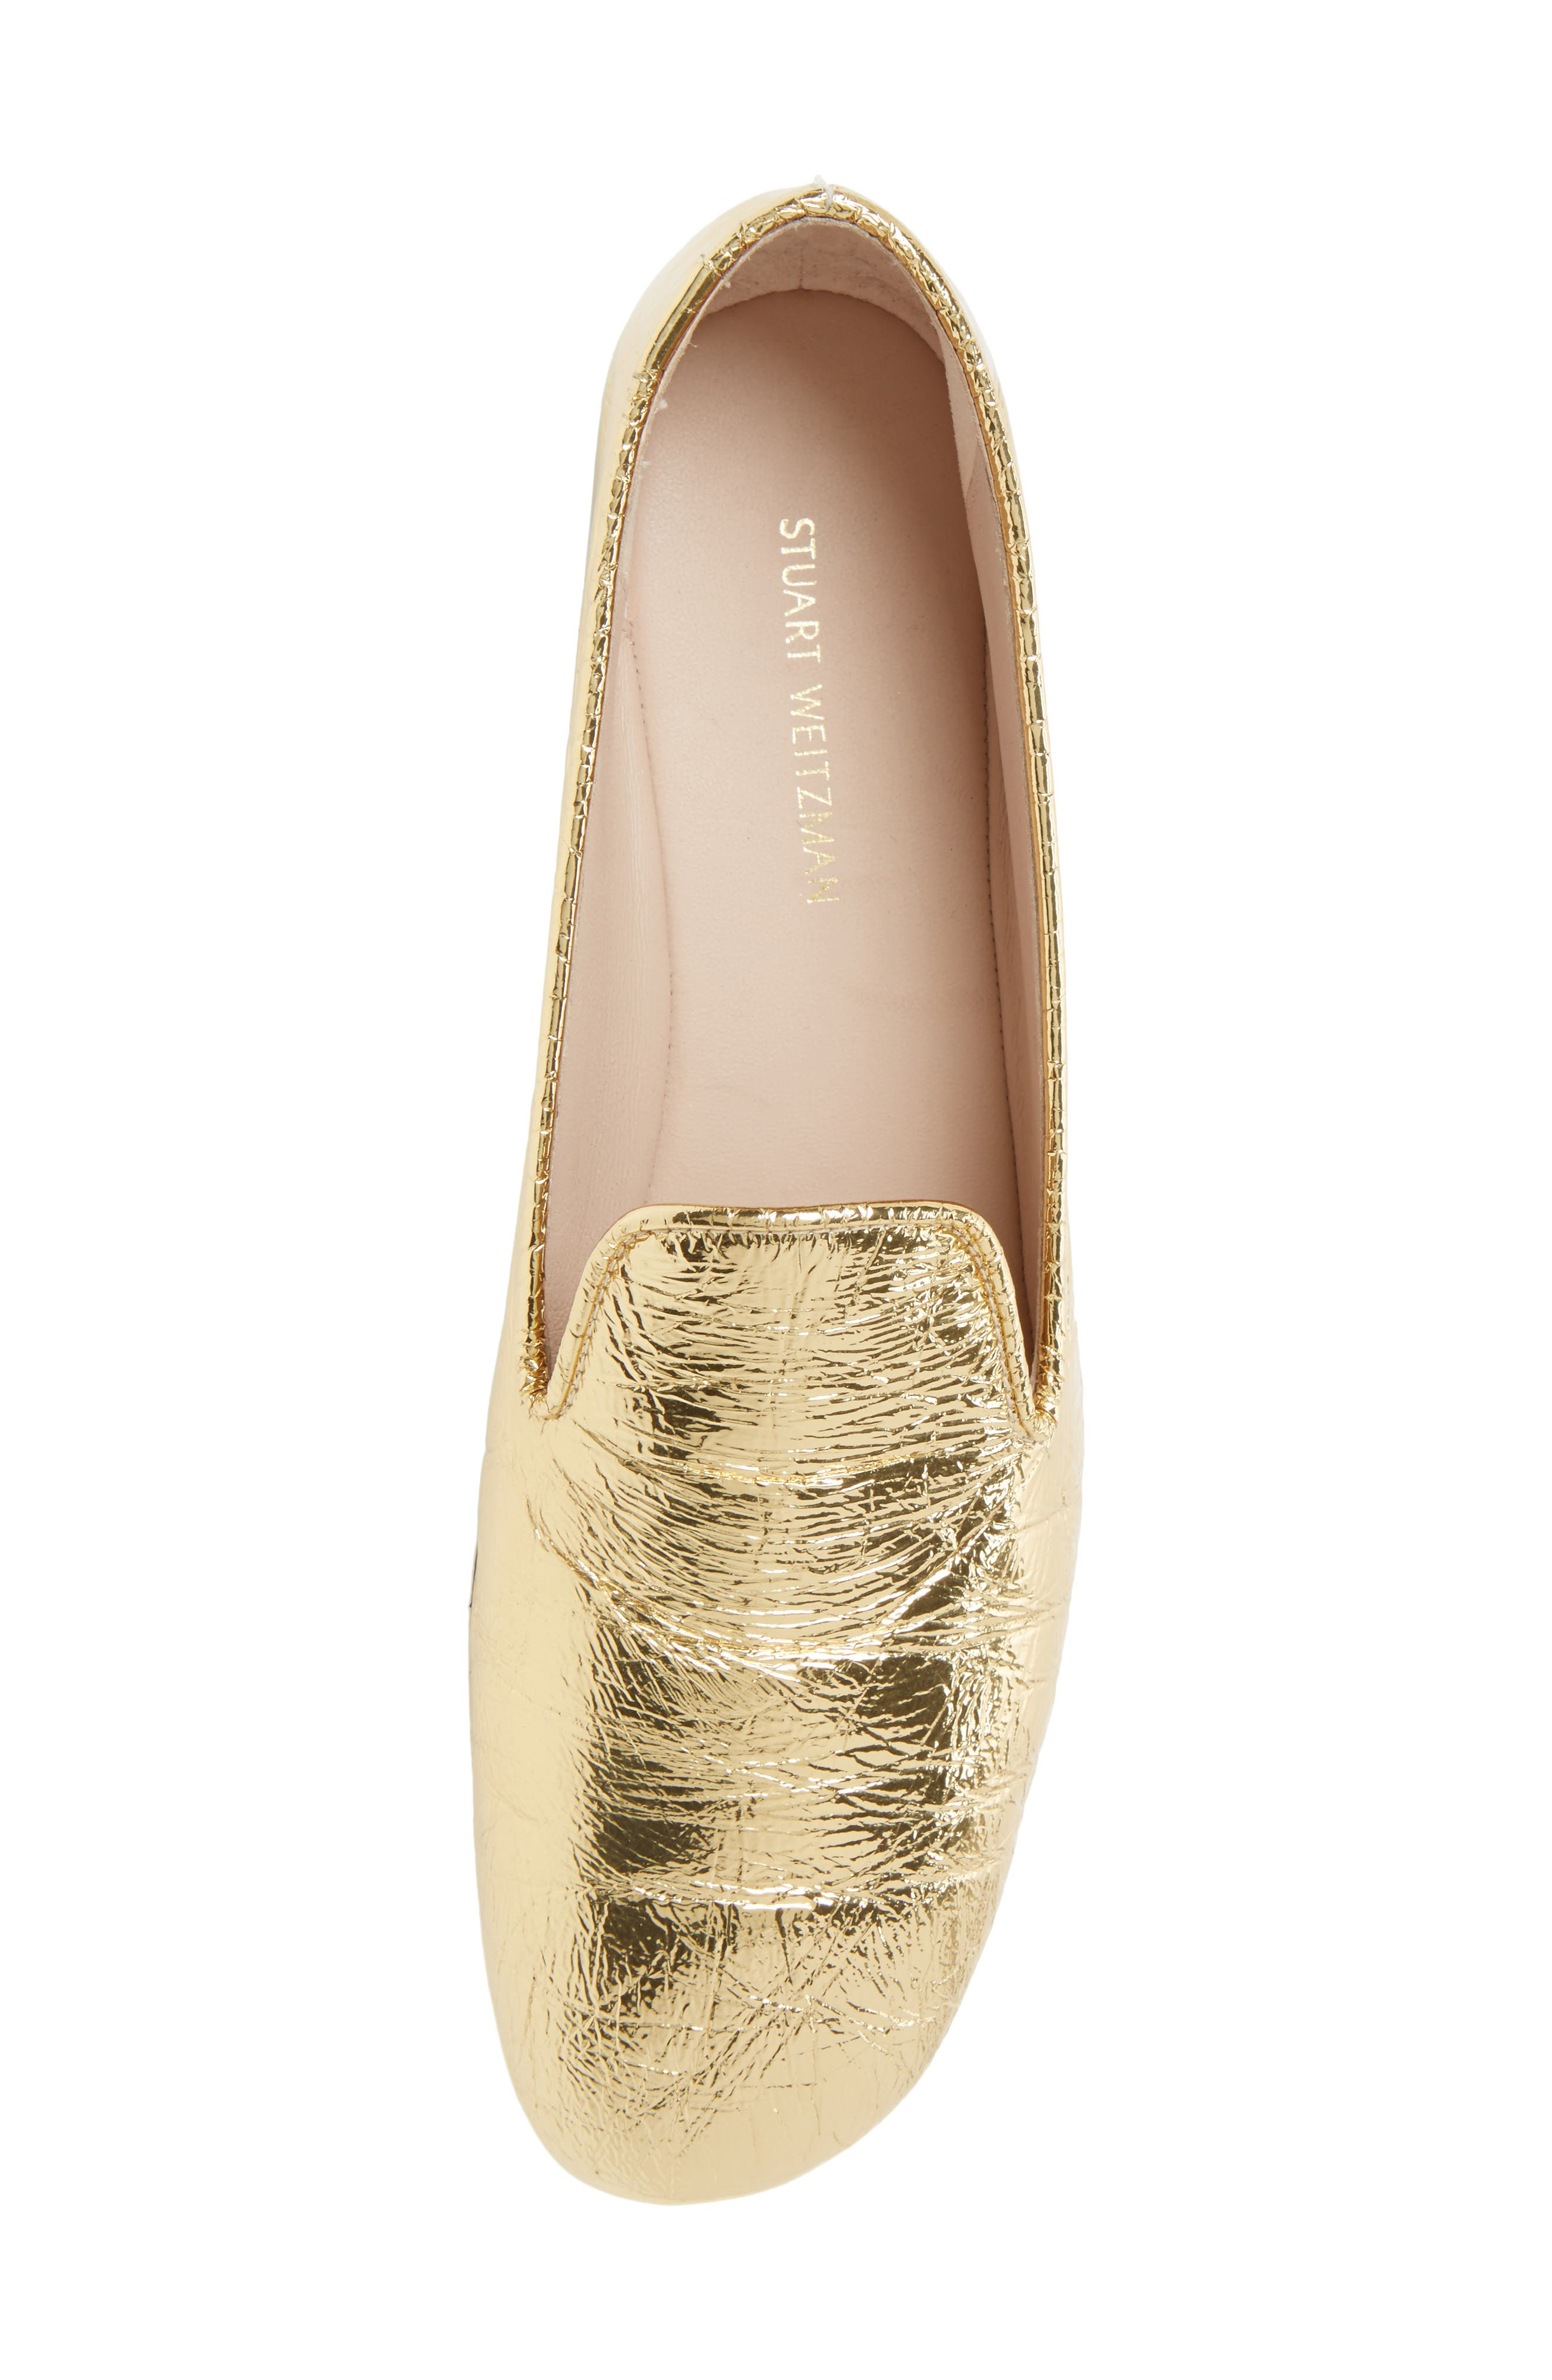 Myguy Venetian Loafer,                             Alternate thumbnail 5, color,                             Gold Look